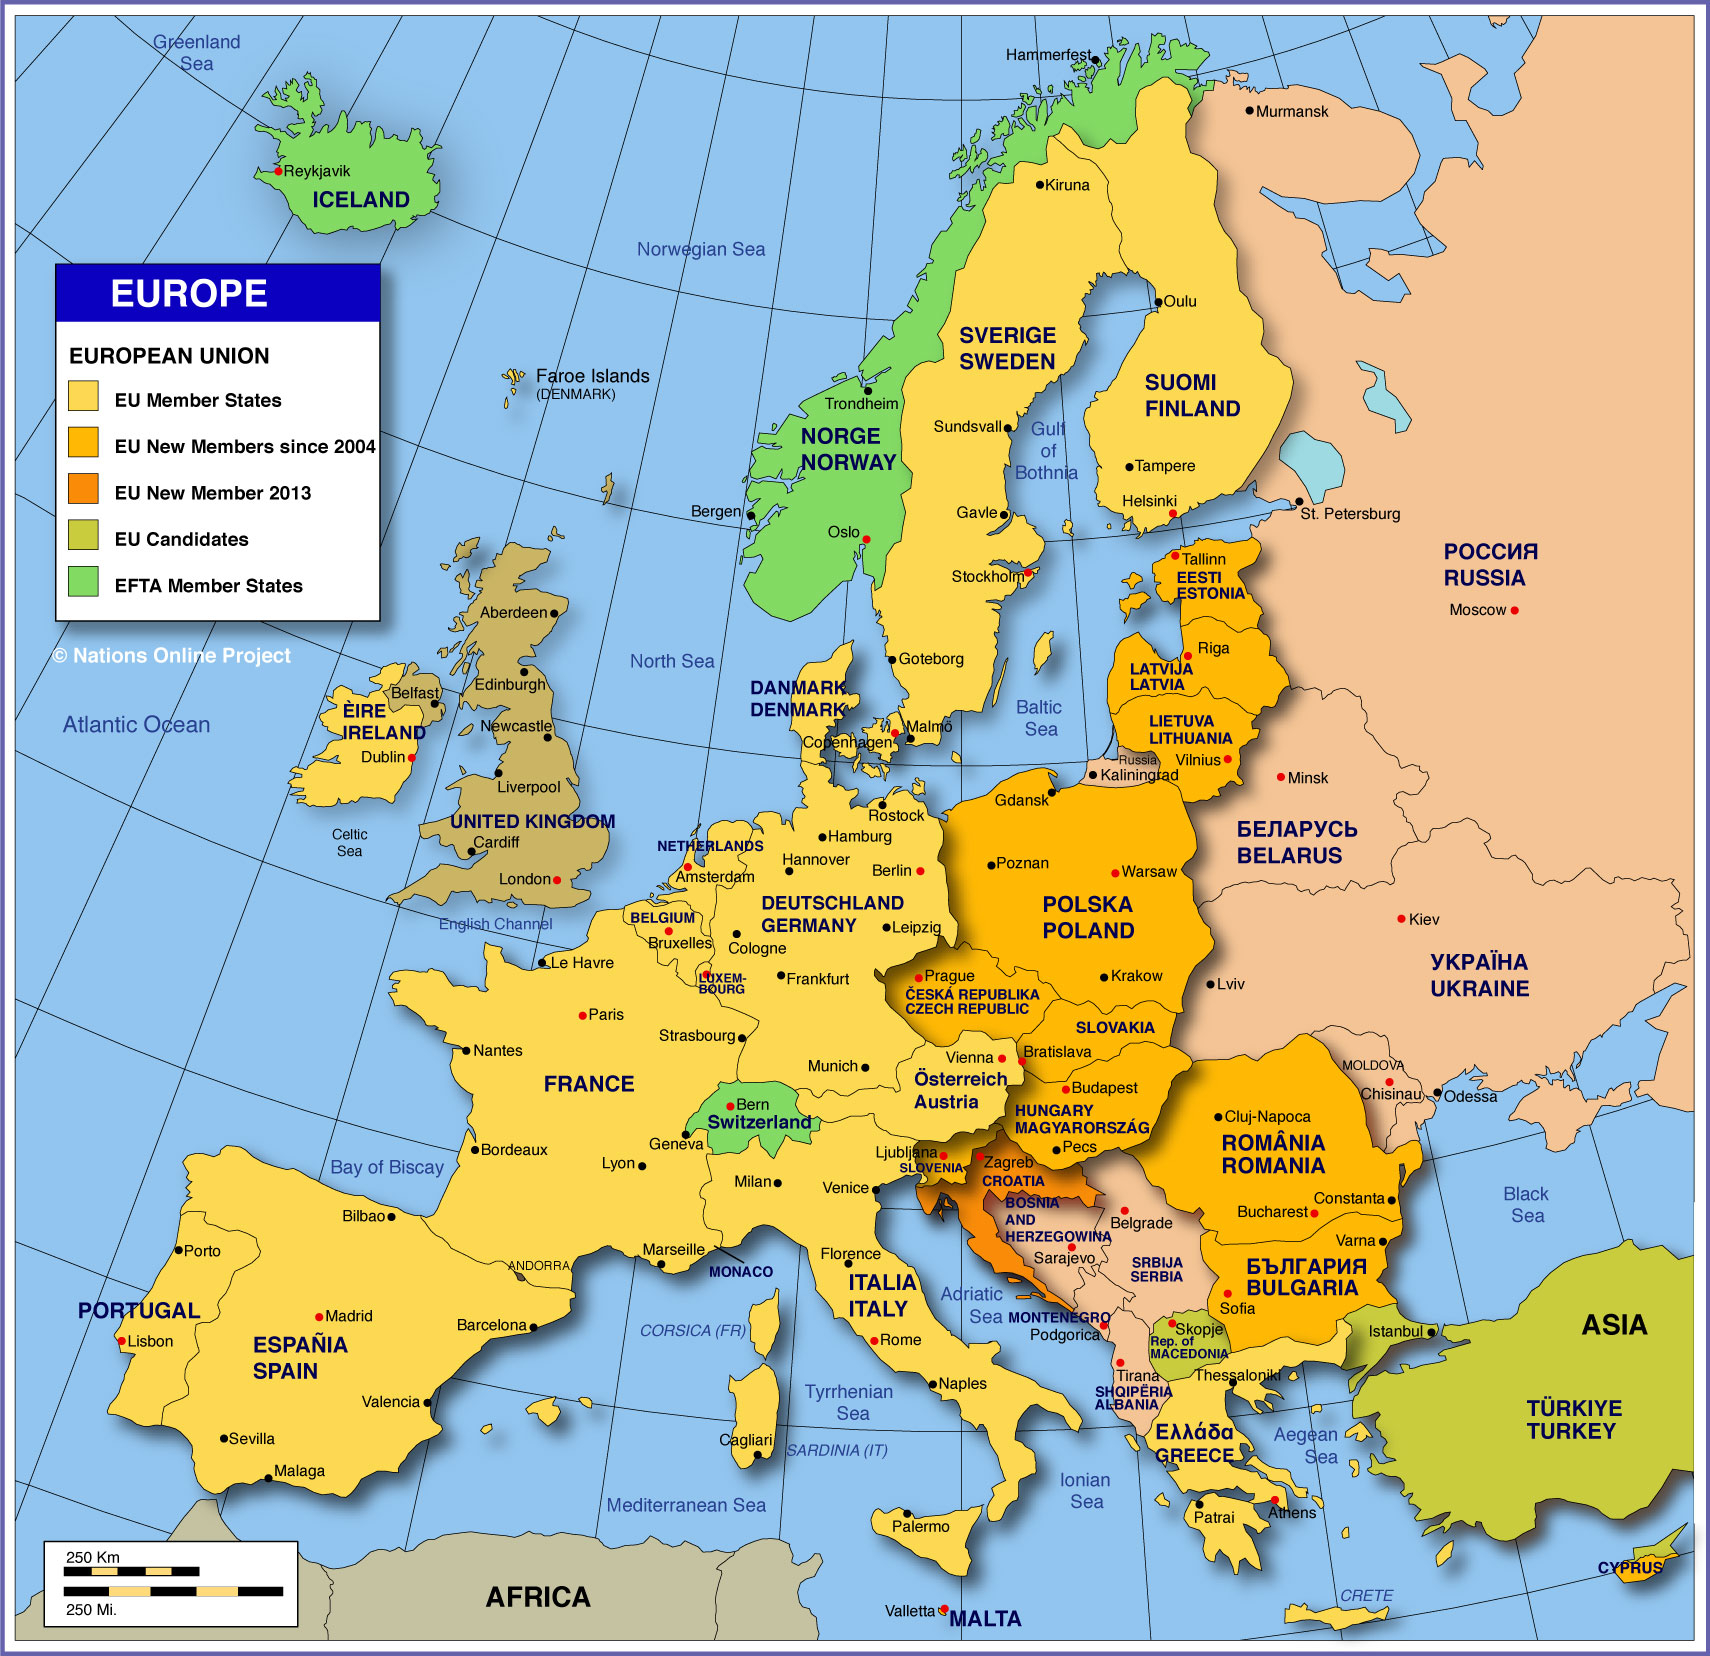 continent of europe map Map Of Europe Member States Of The Eu Nations Online Project continent of europe map